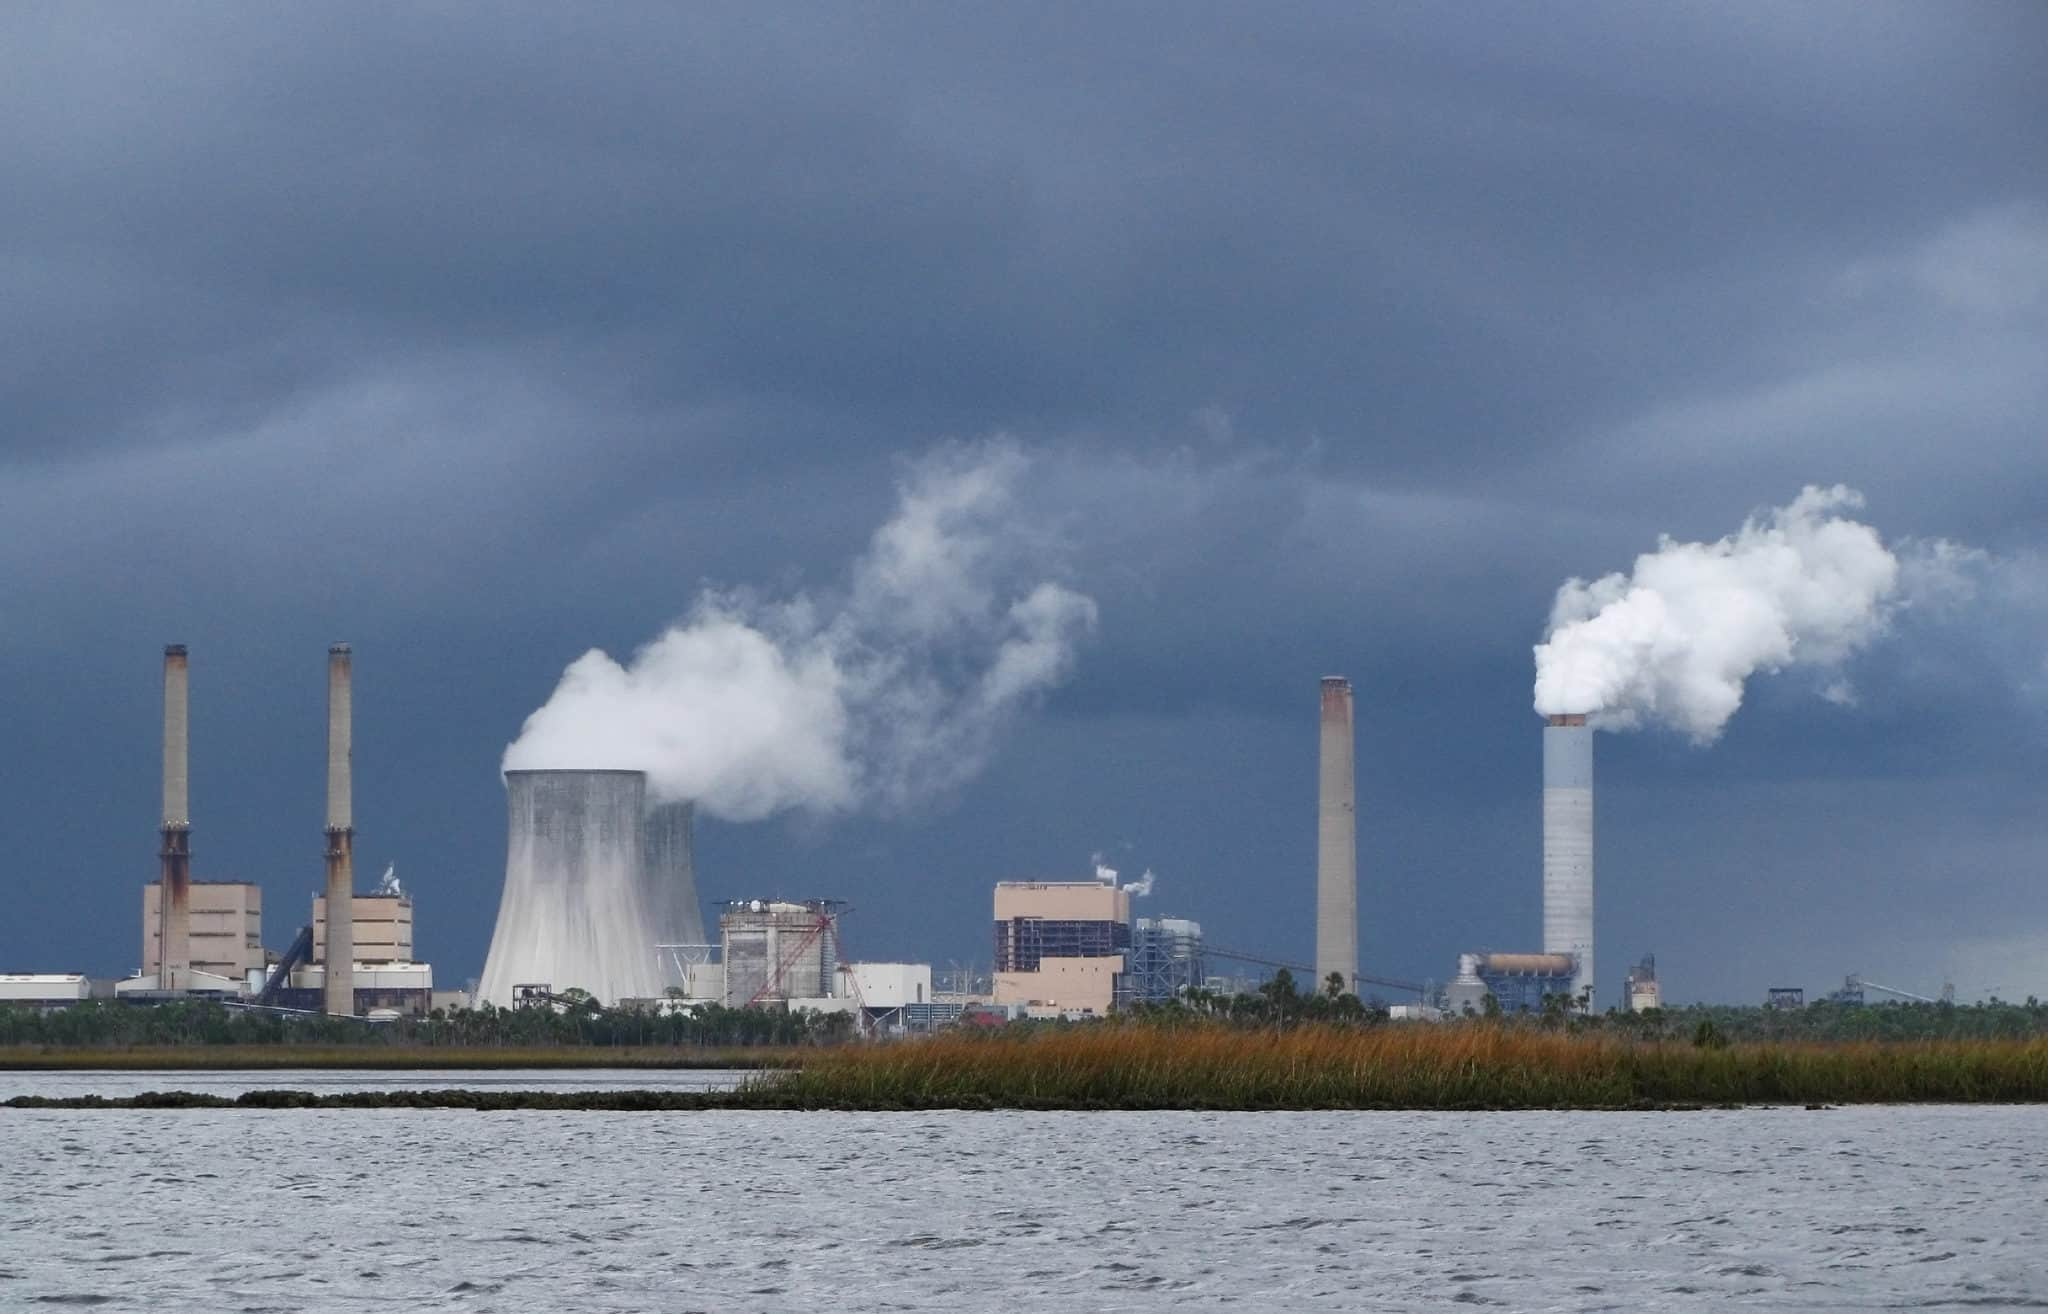 Nuclear power plants in a city